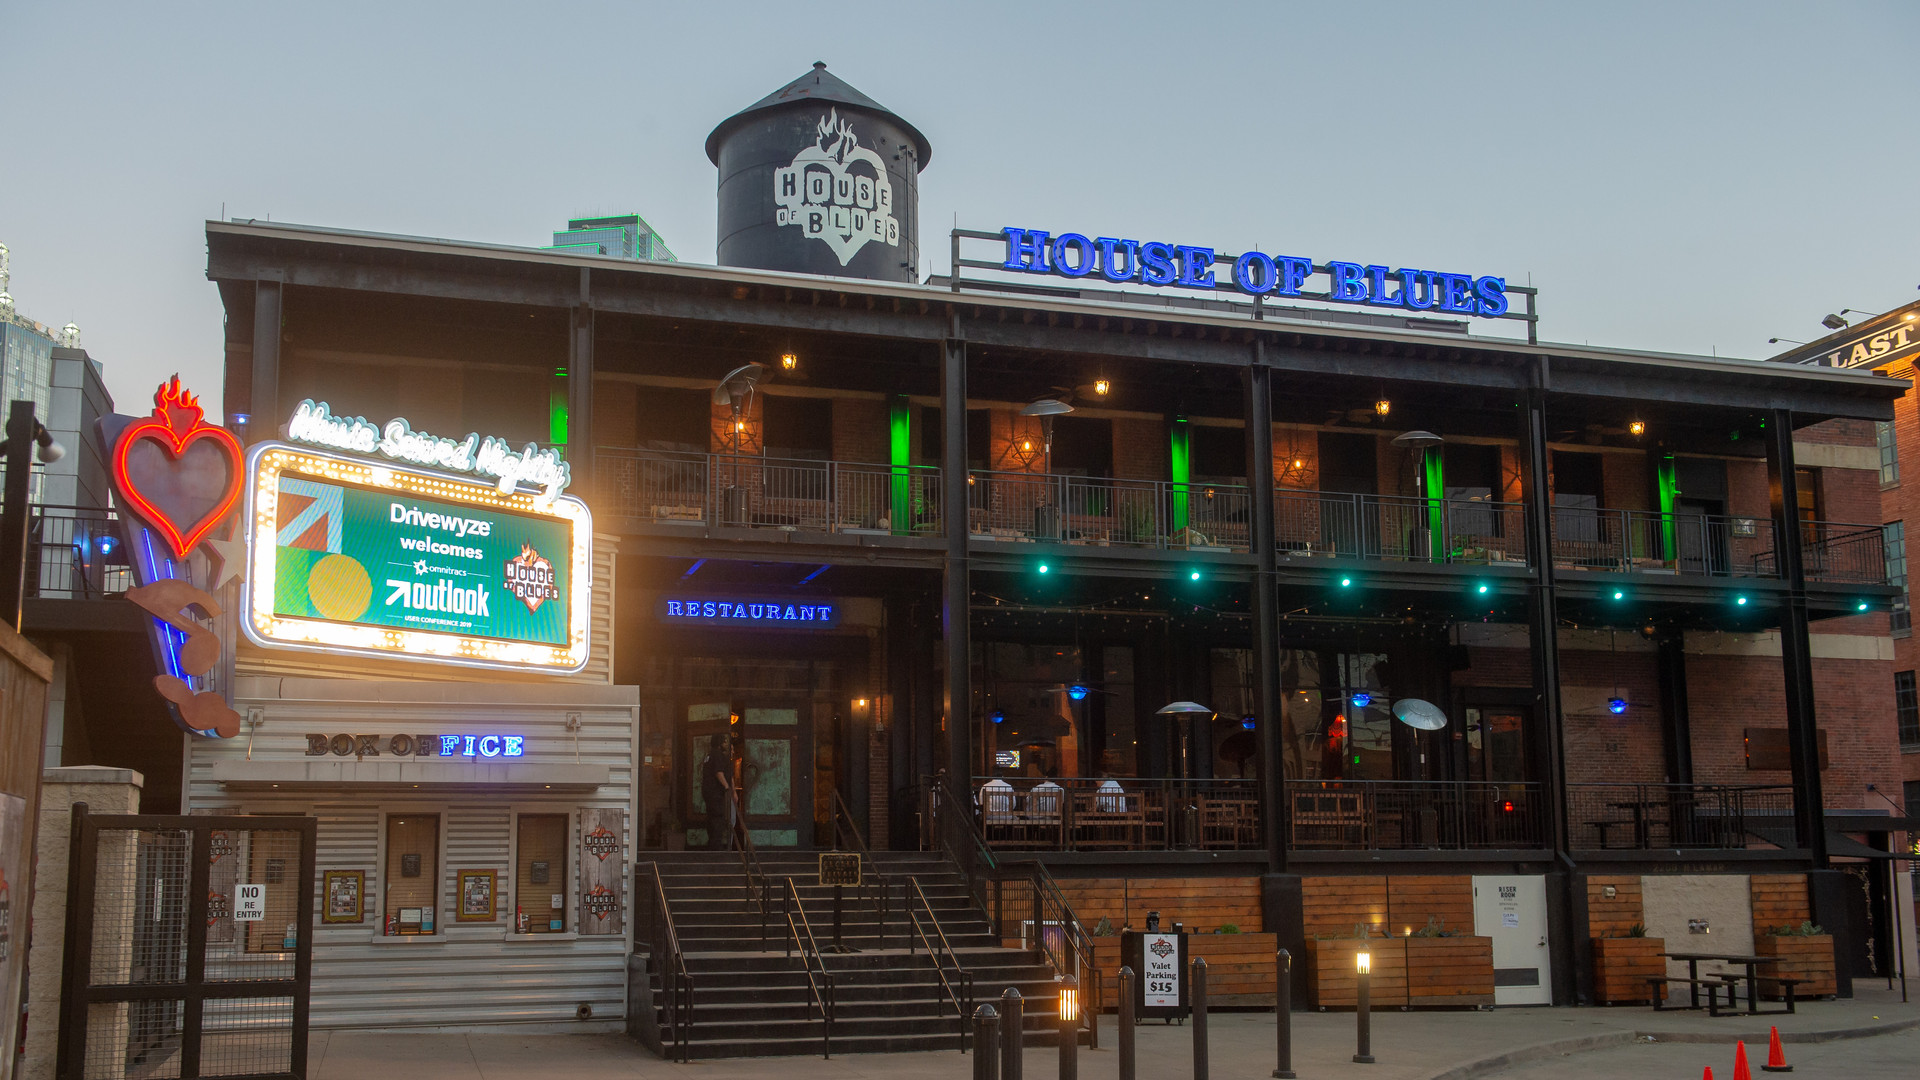 House of Blues Venue to host Outlook User Conference